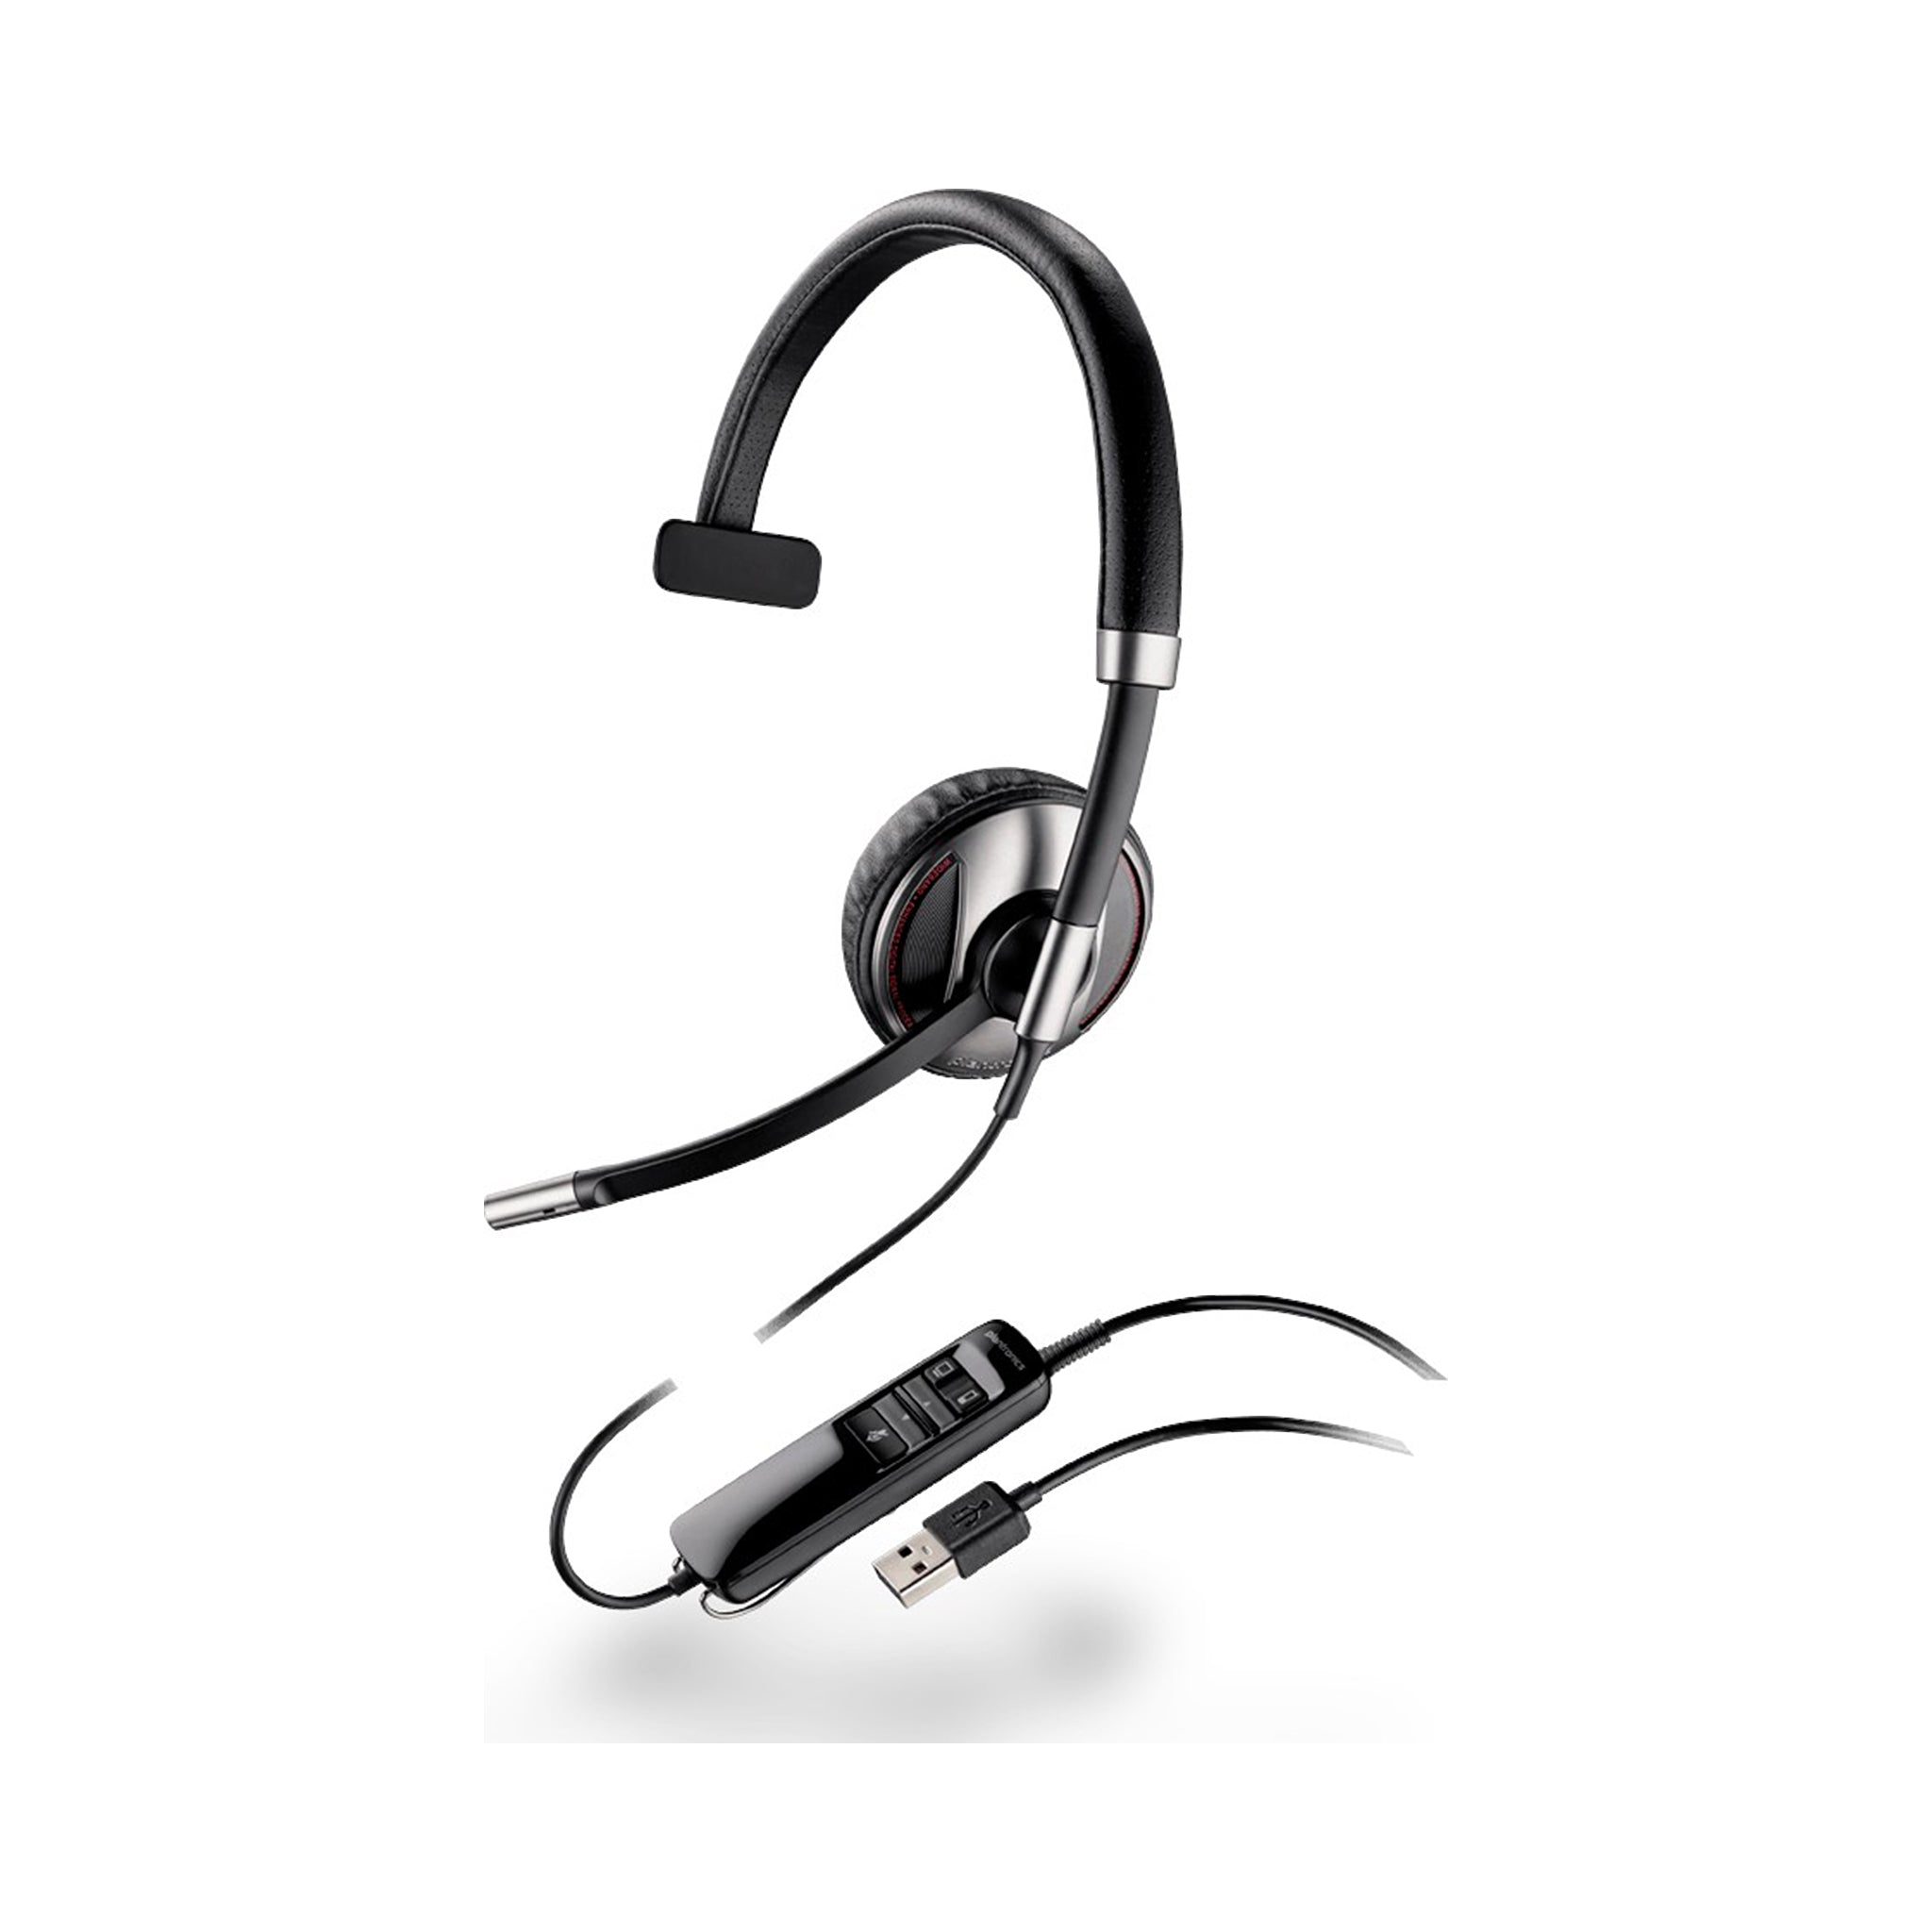 Plantronics Corded Usb Headset Blackwire 710 ( Microsoft ) * Blackwire 710 ( Microsoft ) - Headsets